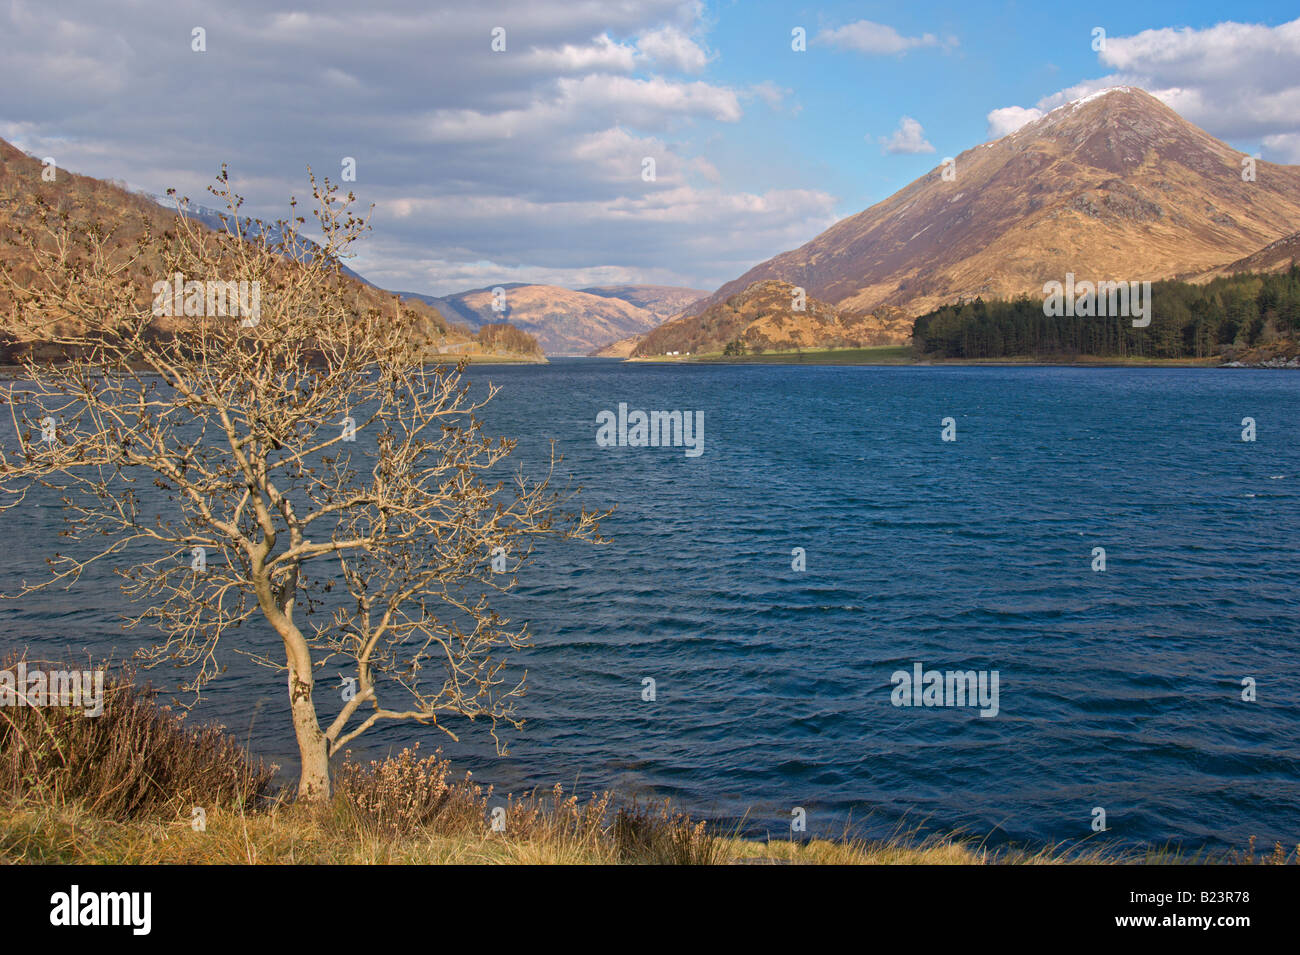 Looking east up Loch Leven from near Glencoe Highland Region Scotland April 2008 - Stock Image